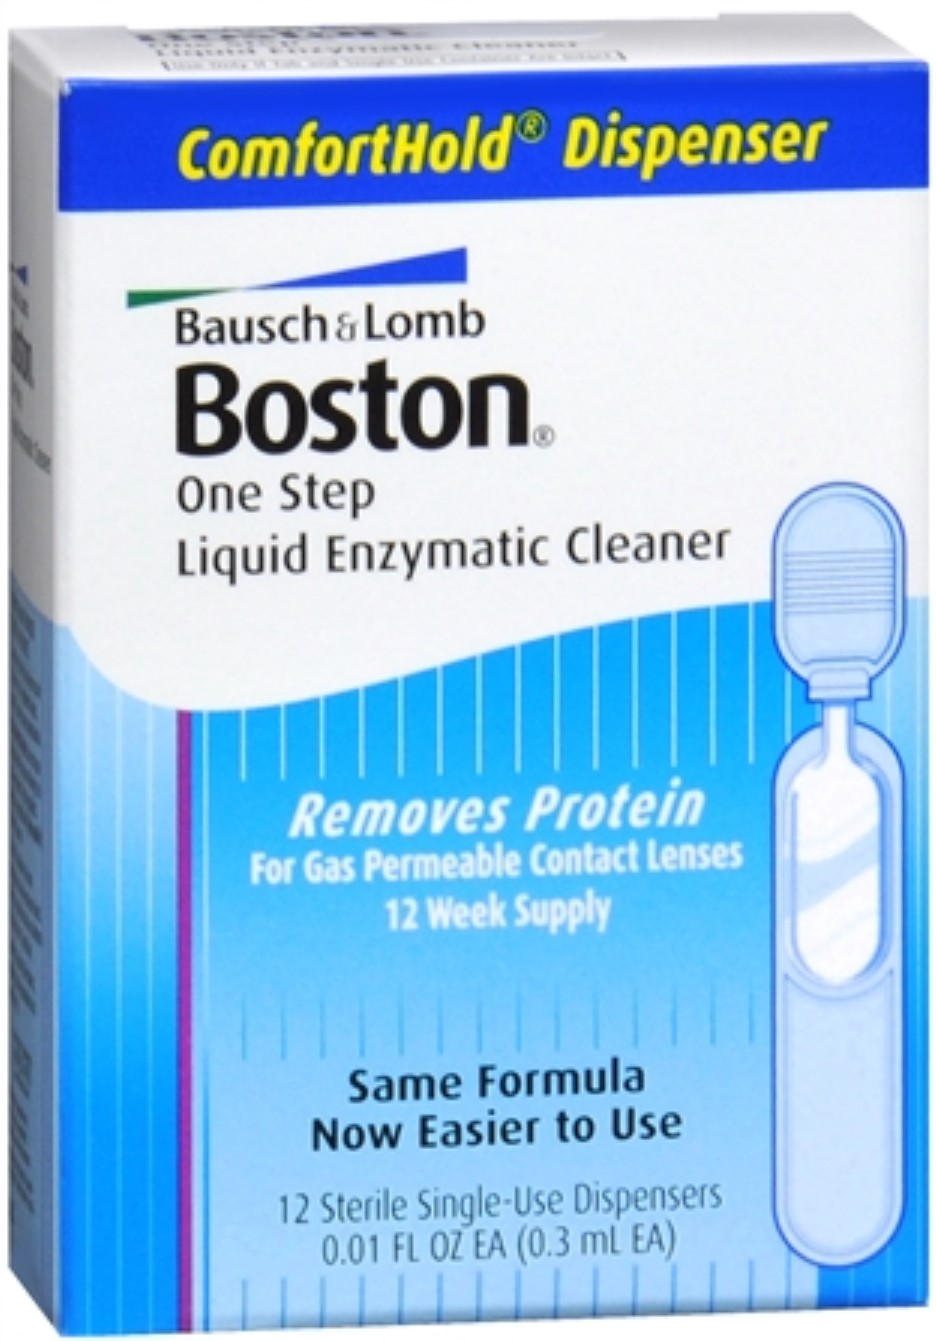 Bausch lomb boston one step liquid enzymatic cleaner 360 ml bausch lomb boston one step liquid enzymatic cleaner 360 ml pack of 2 walmart nvjuhfo Images